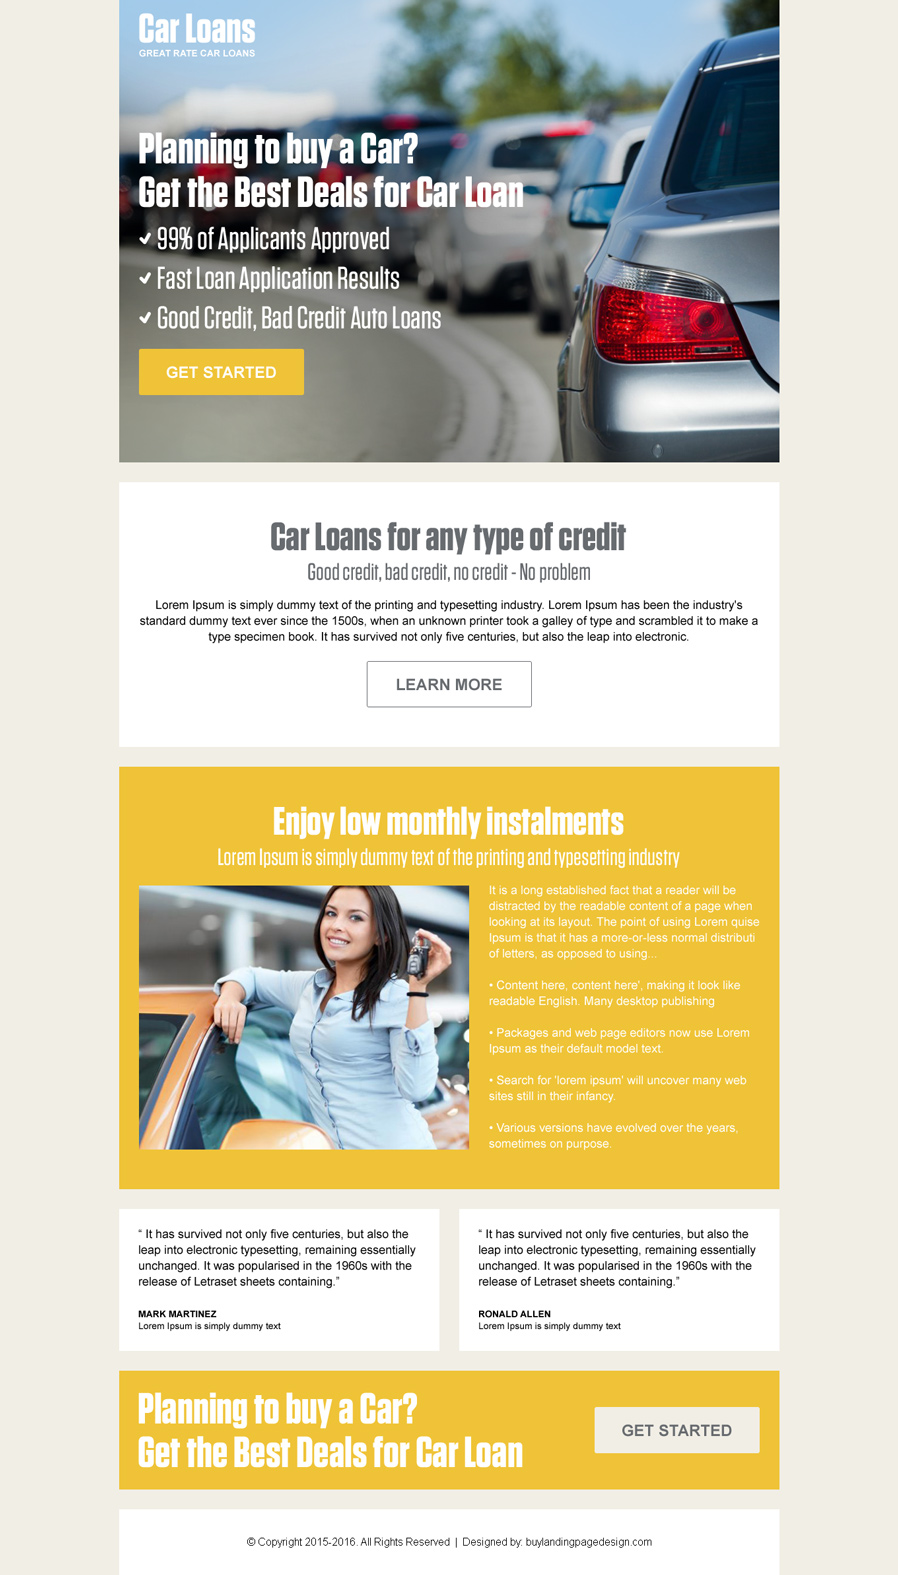 car-loan-ppc-landing-page-design-to-increase-your-car-loan-business-leads-011